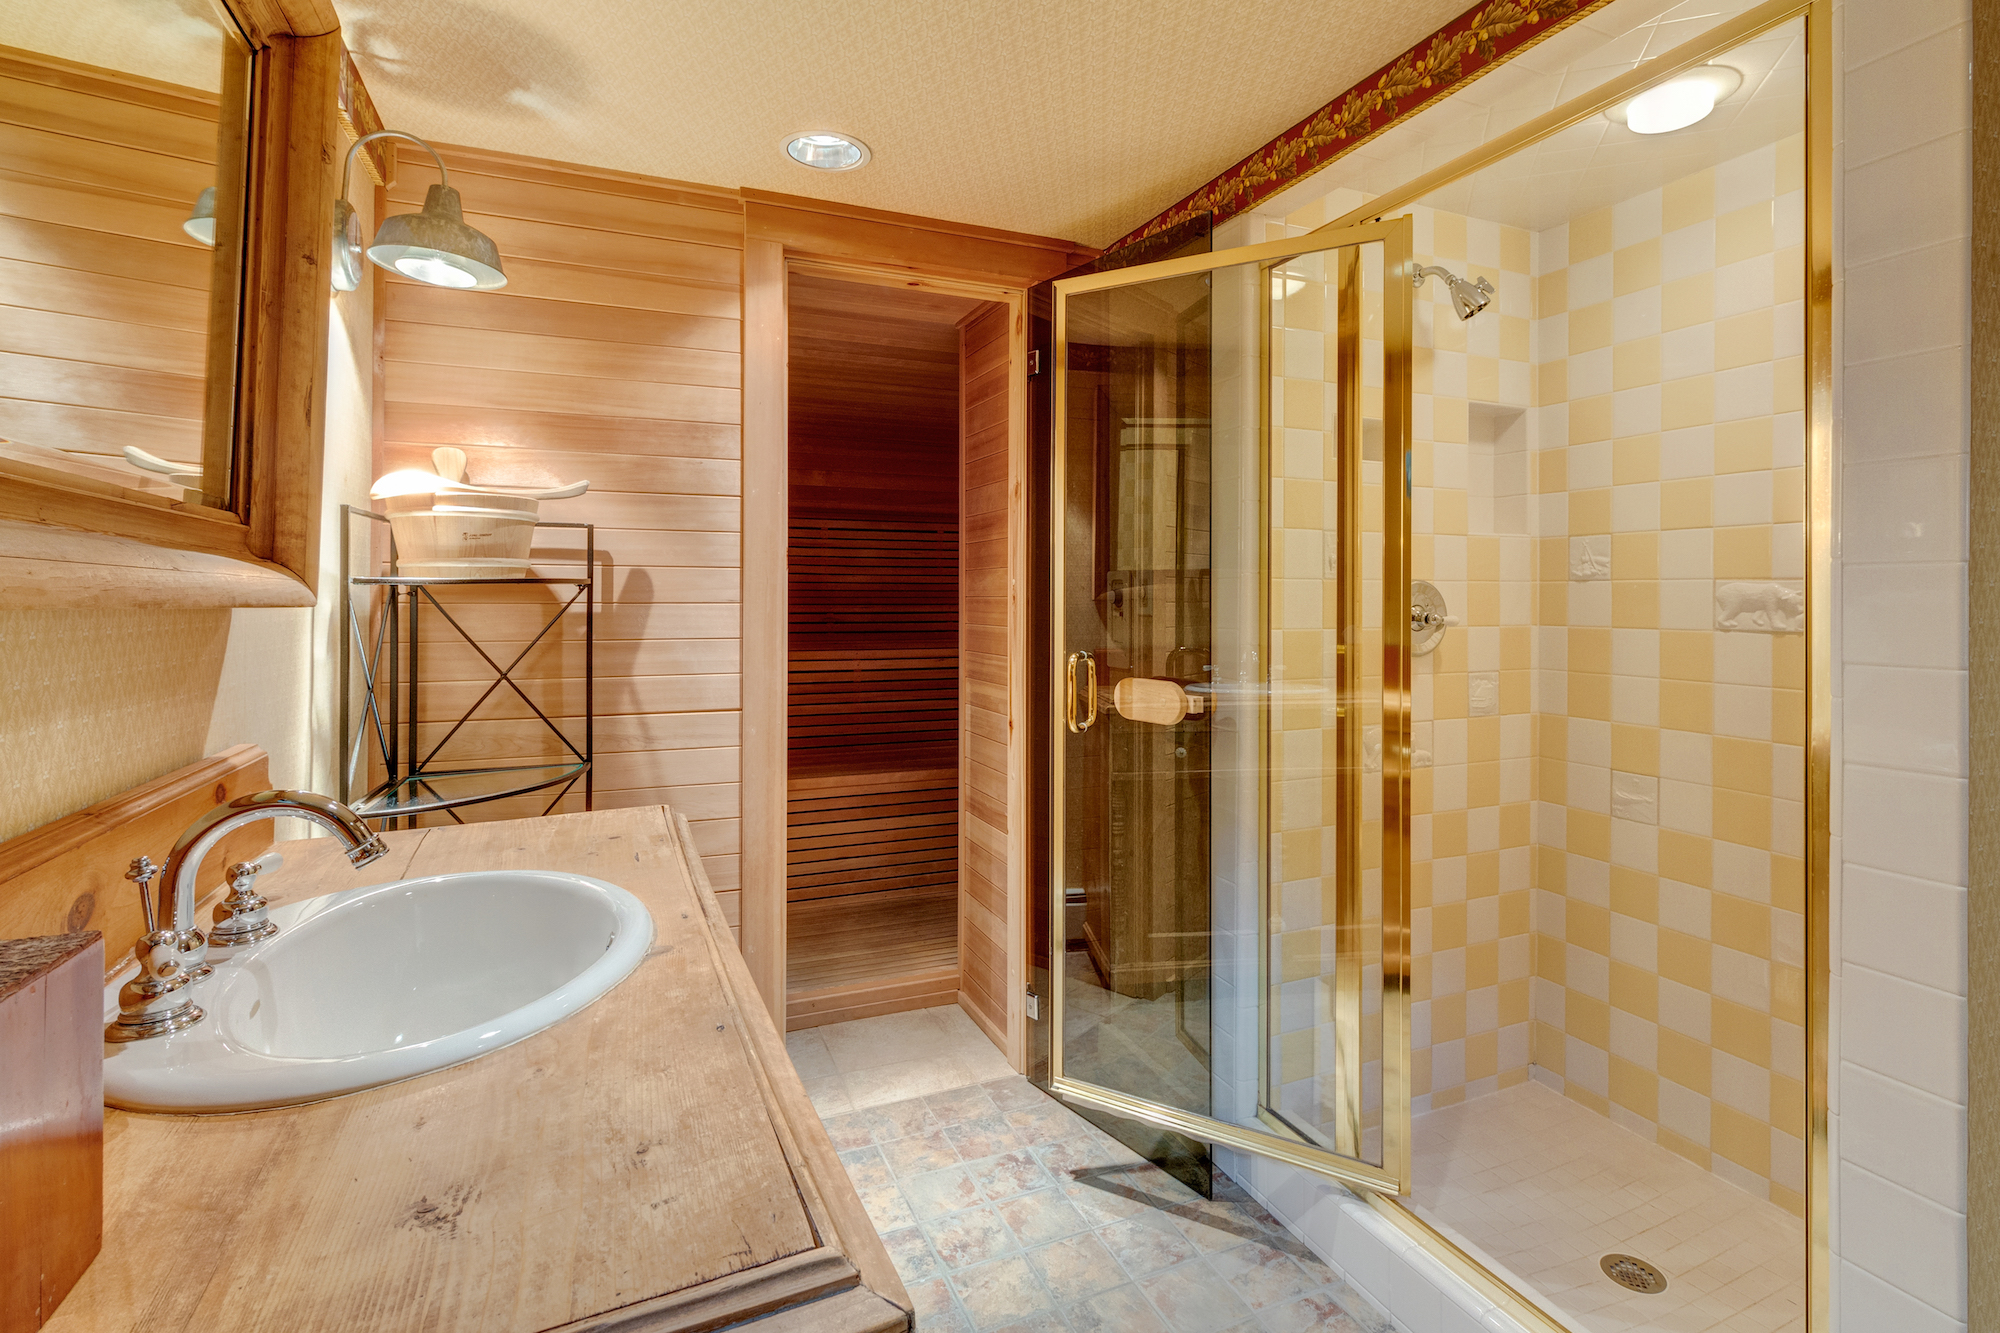 23-Lower level guest bath with shower and sauna.jpg